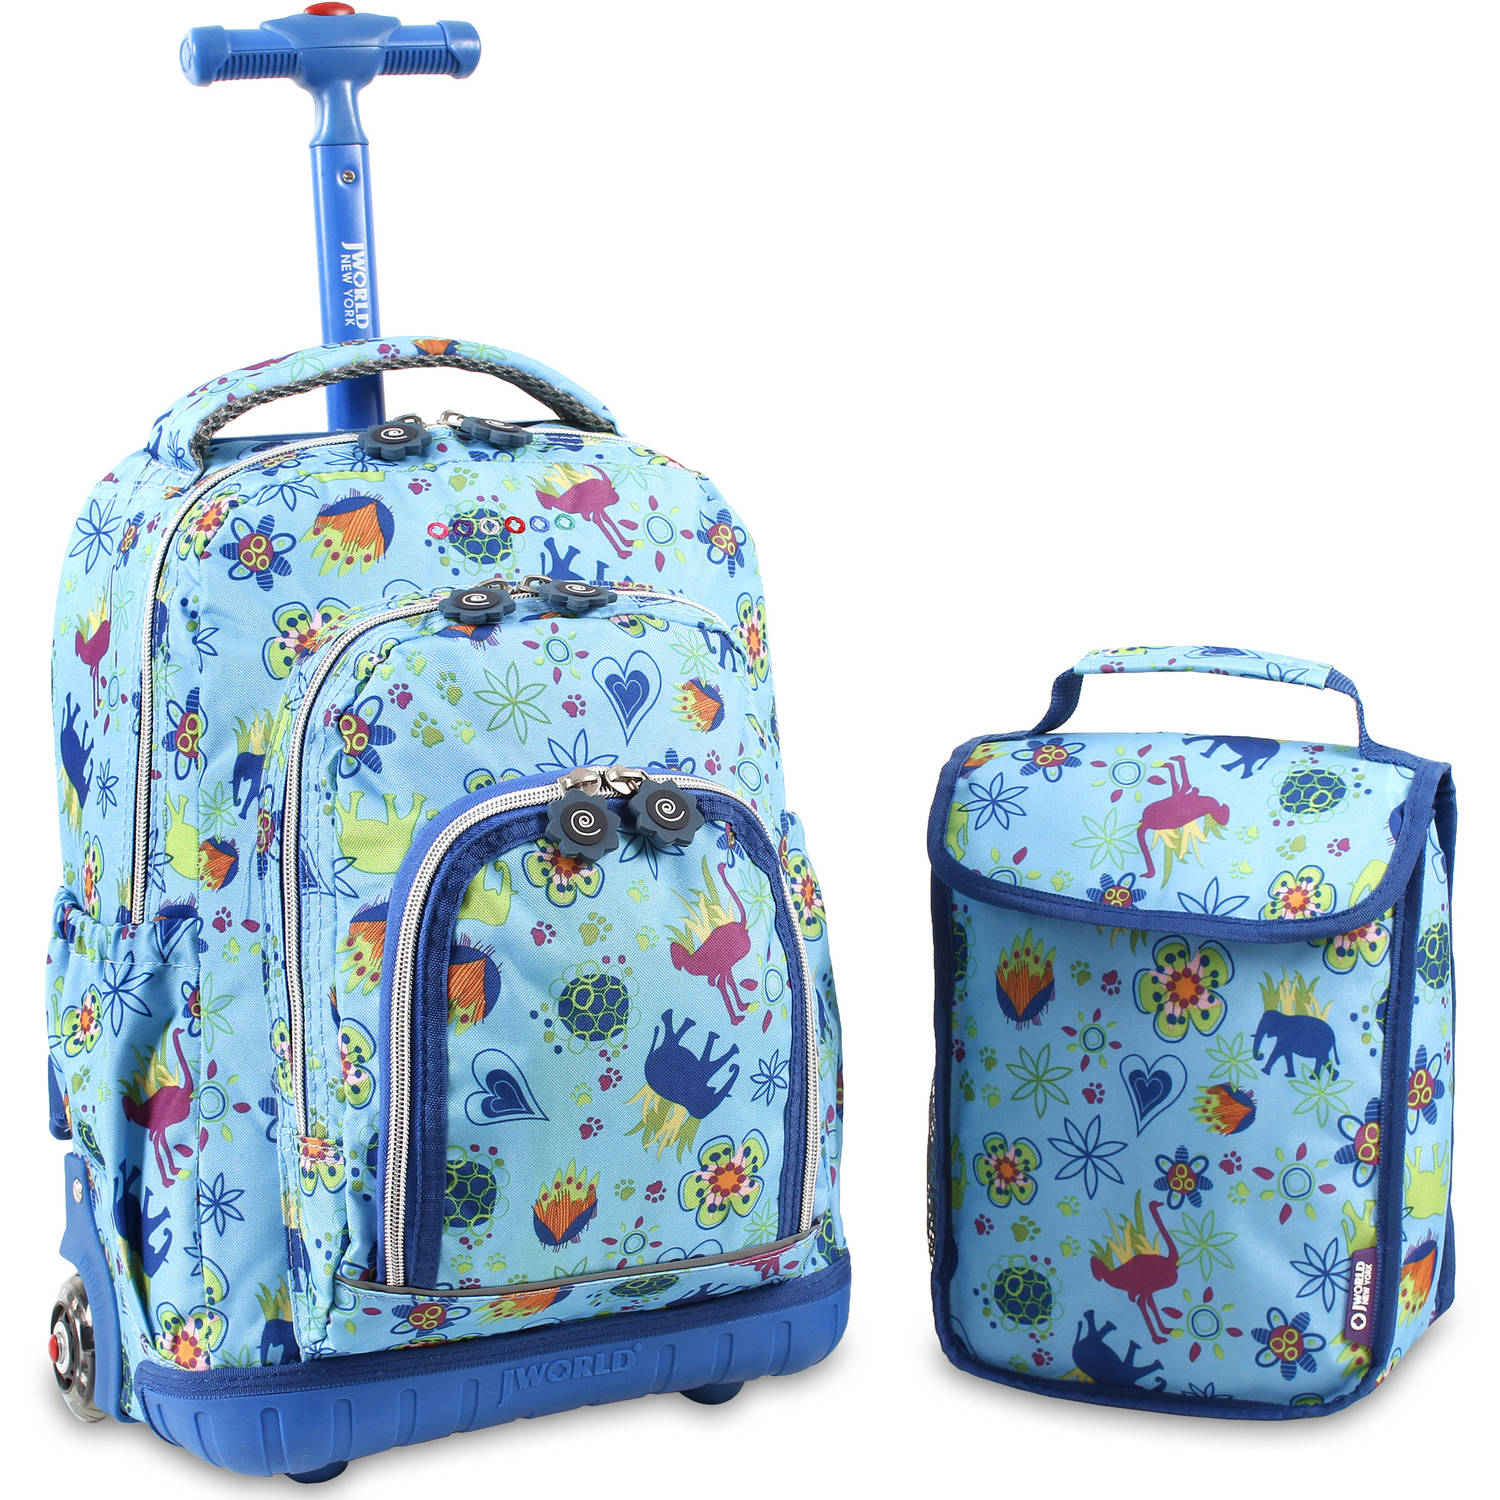 "J World Lolipop 16"" Rolling Backpack with Bonus Lunch Bag by J World"